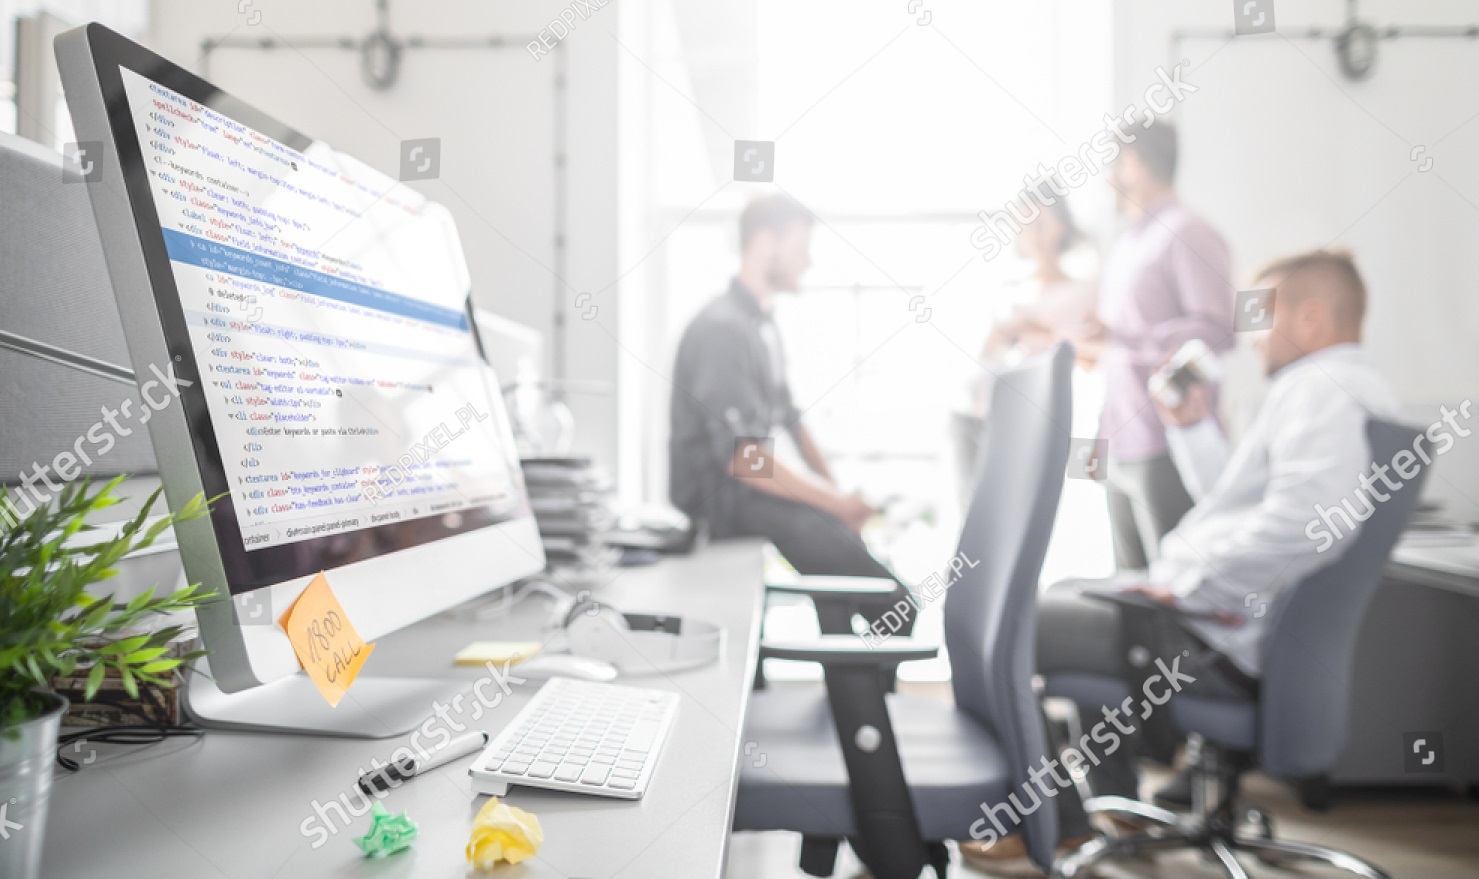 stock-photo-developing-programming-and-coding-technologies-website-design-programmer-working-in-a-software-1150302662-1